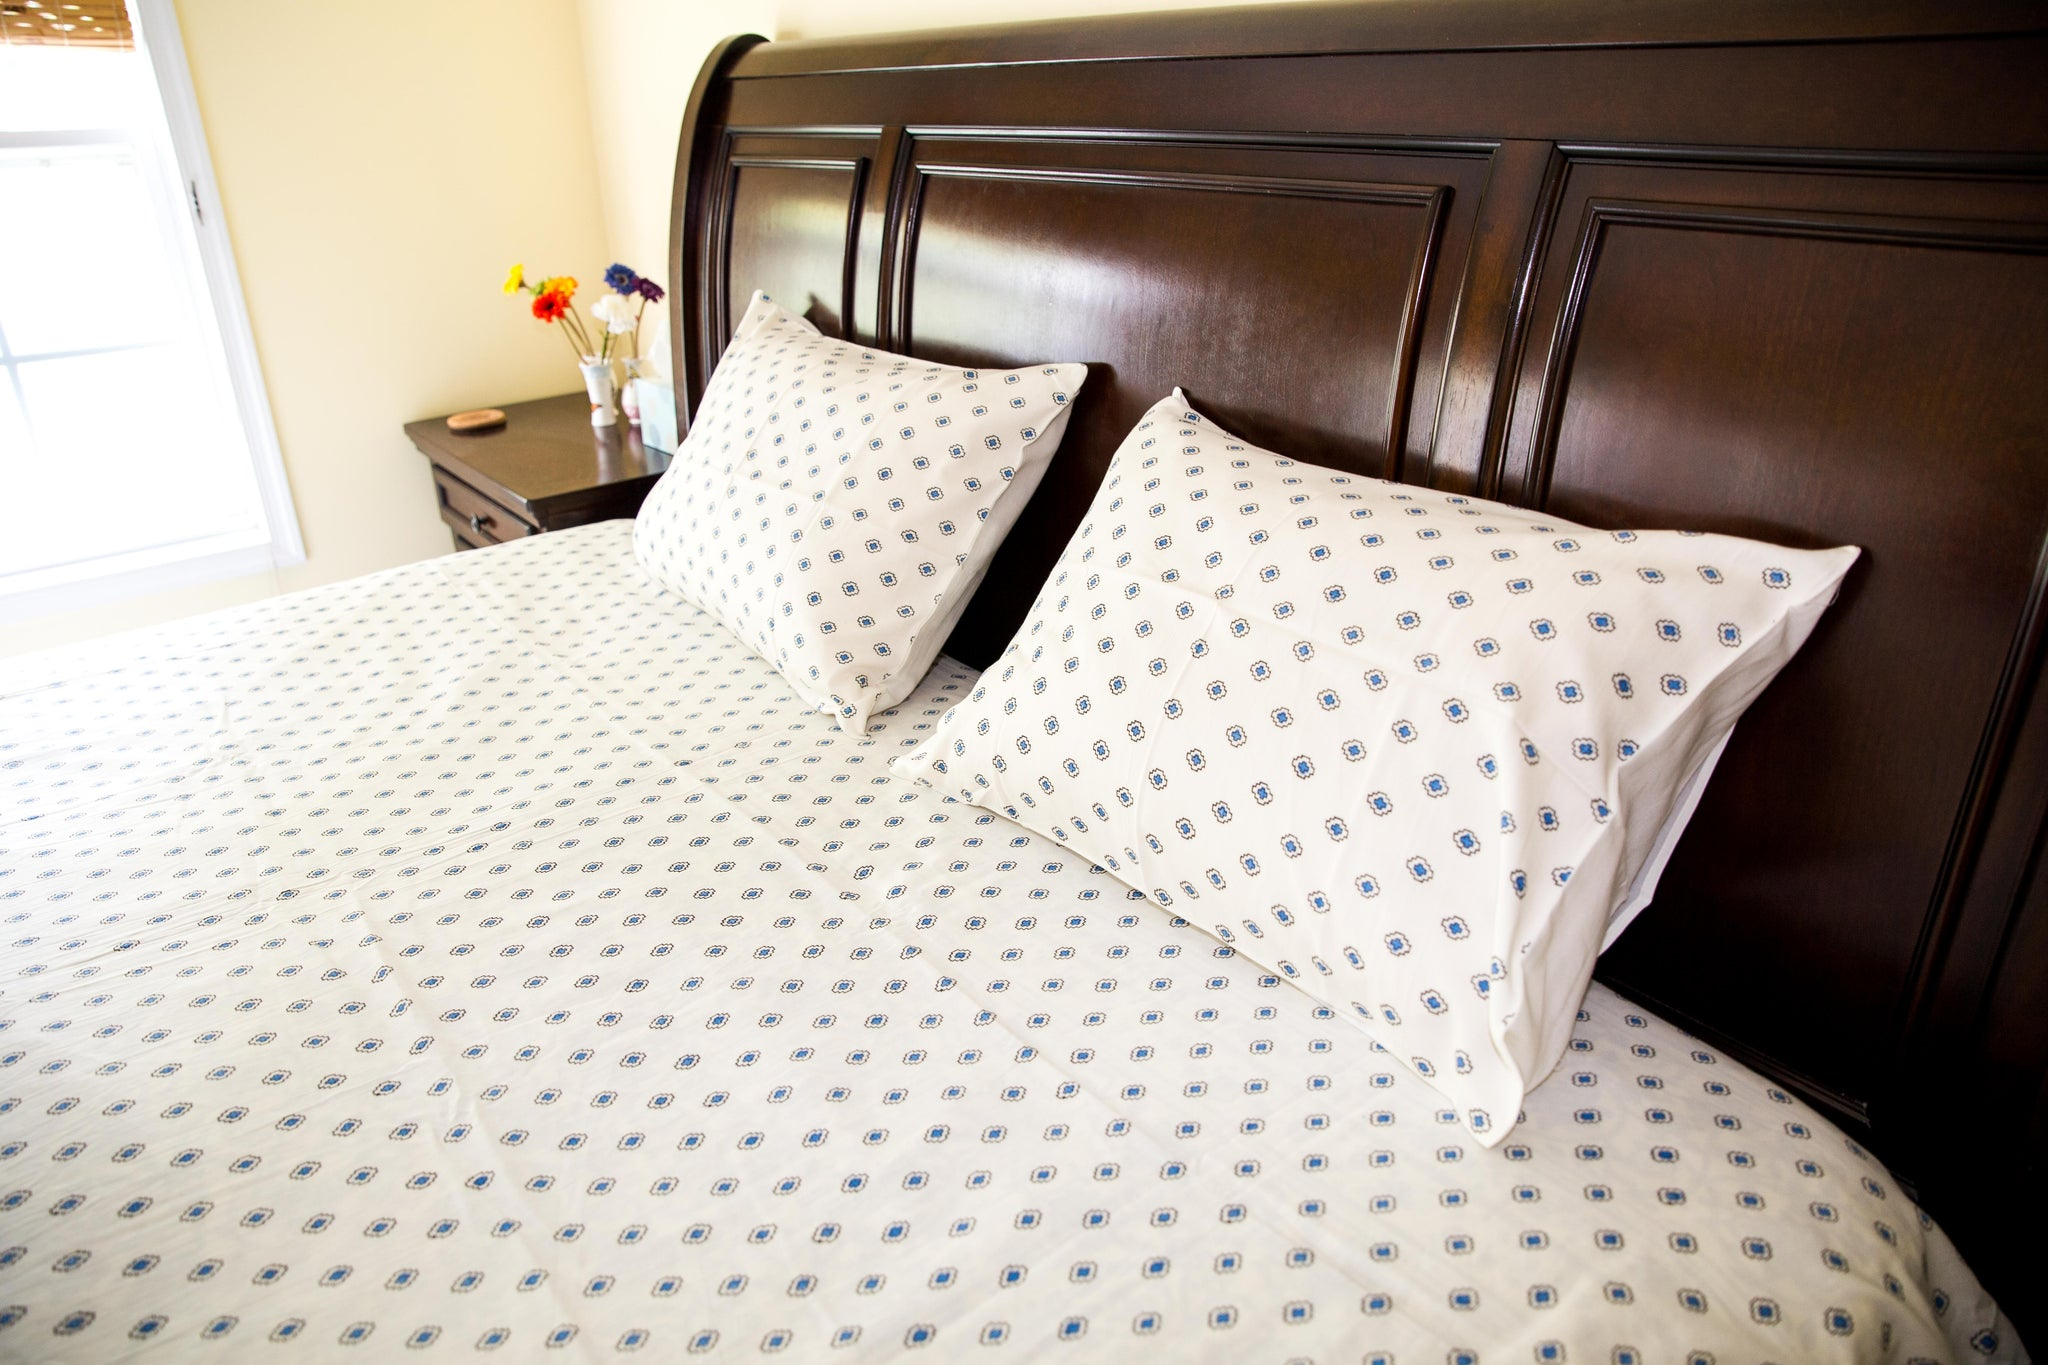 Handmade Block-Printed Bed Sheet with Pillowcases Blue and Off-white color with designs - King Size